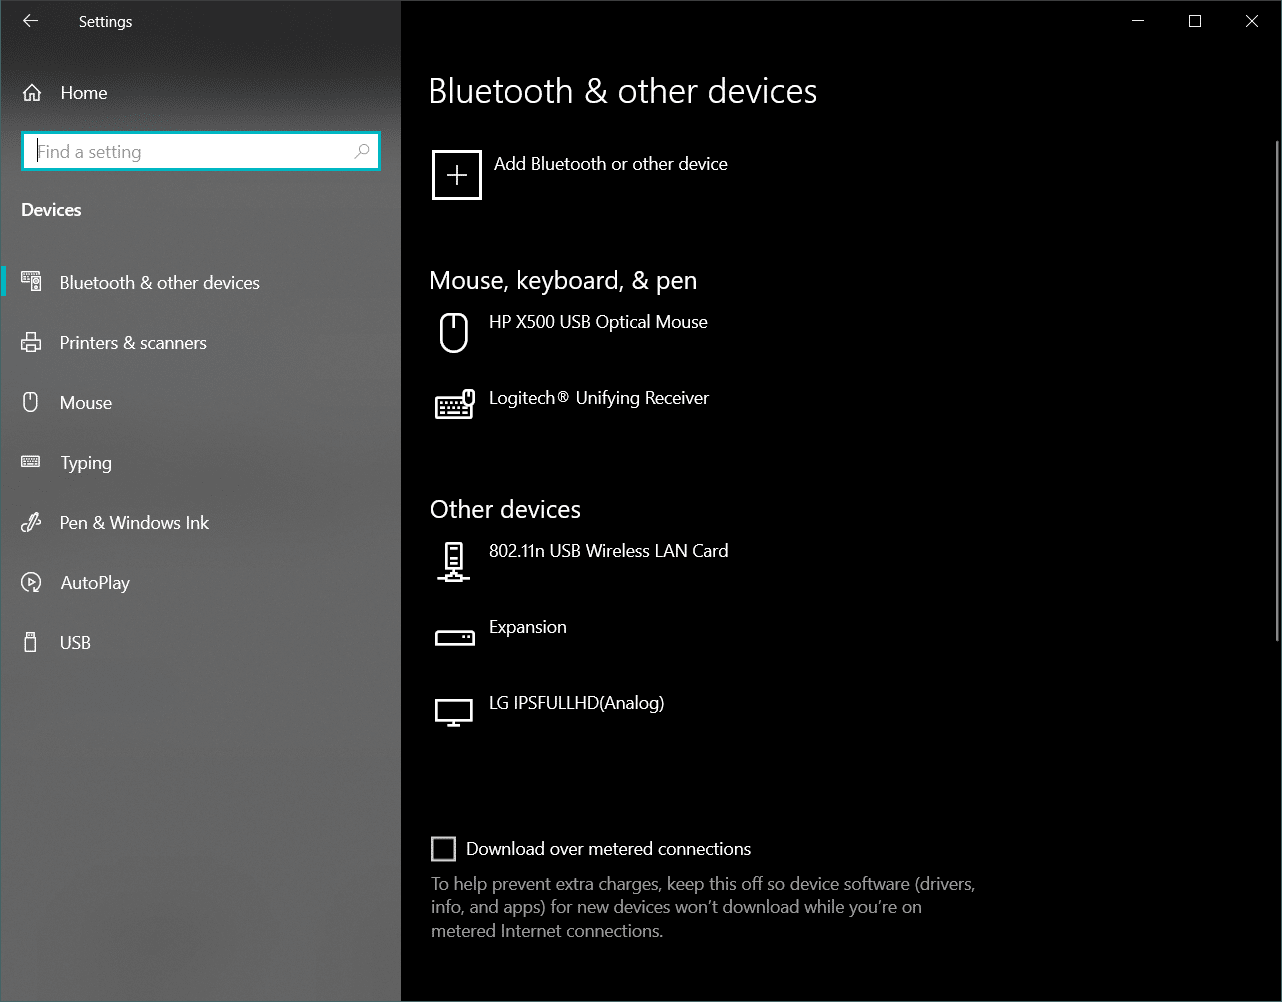 windows 10 bluetooth stopped working